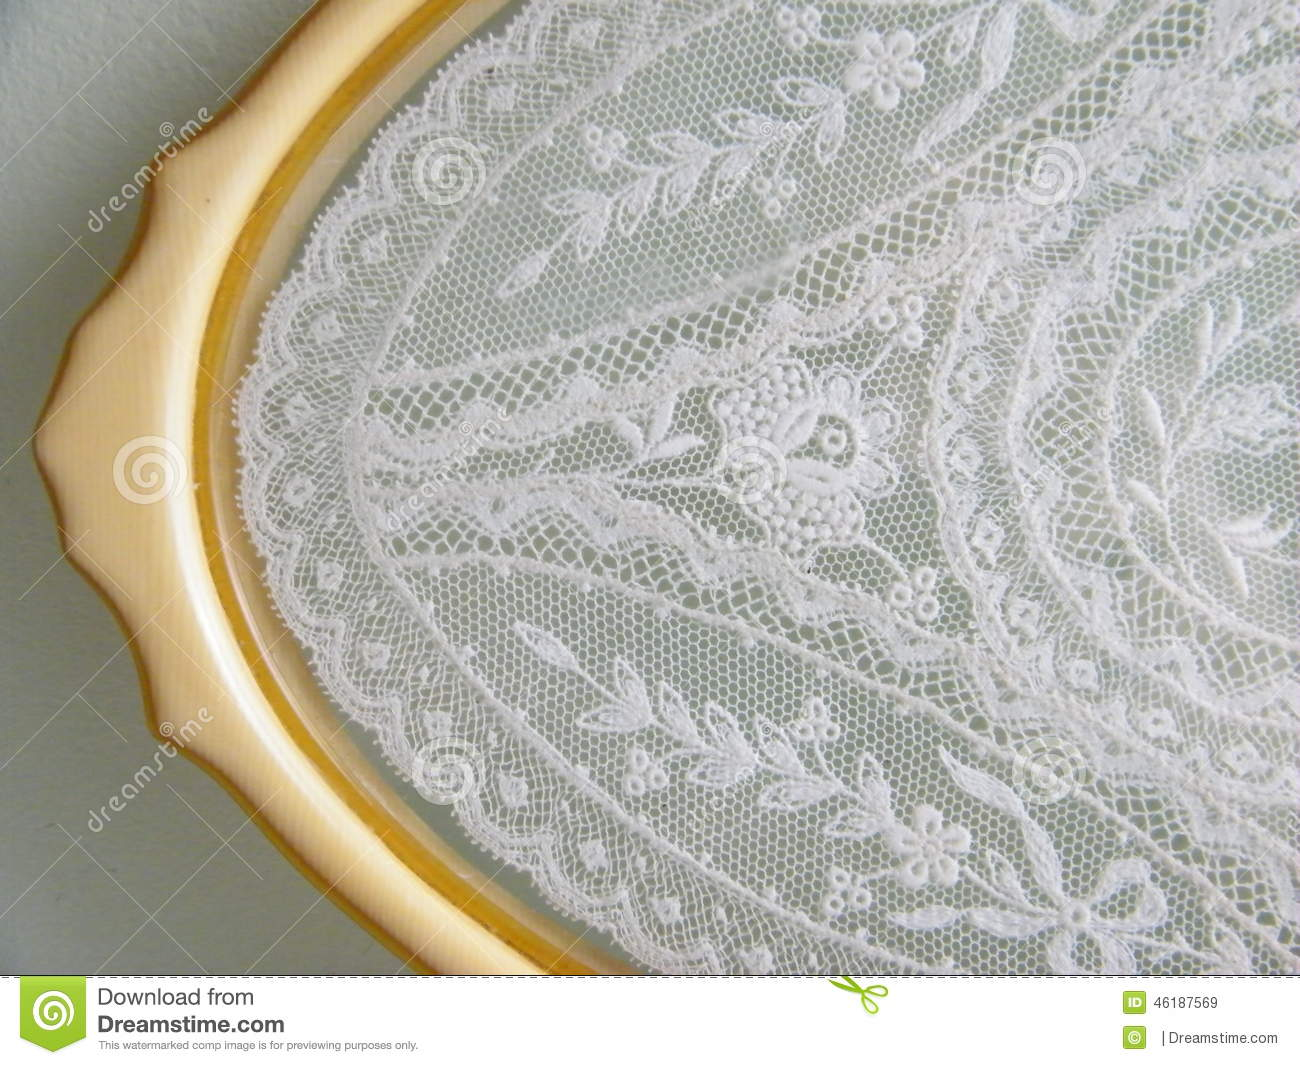 Antique vanity tray with lace insert - Vintage Lace Tray Stock Photo